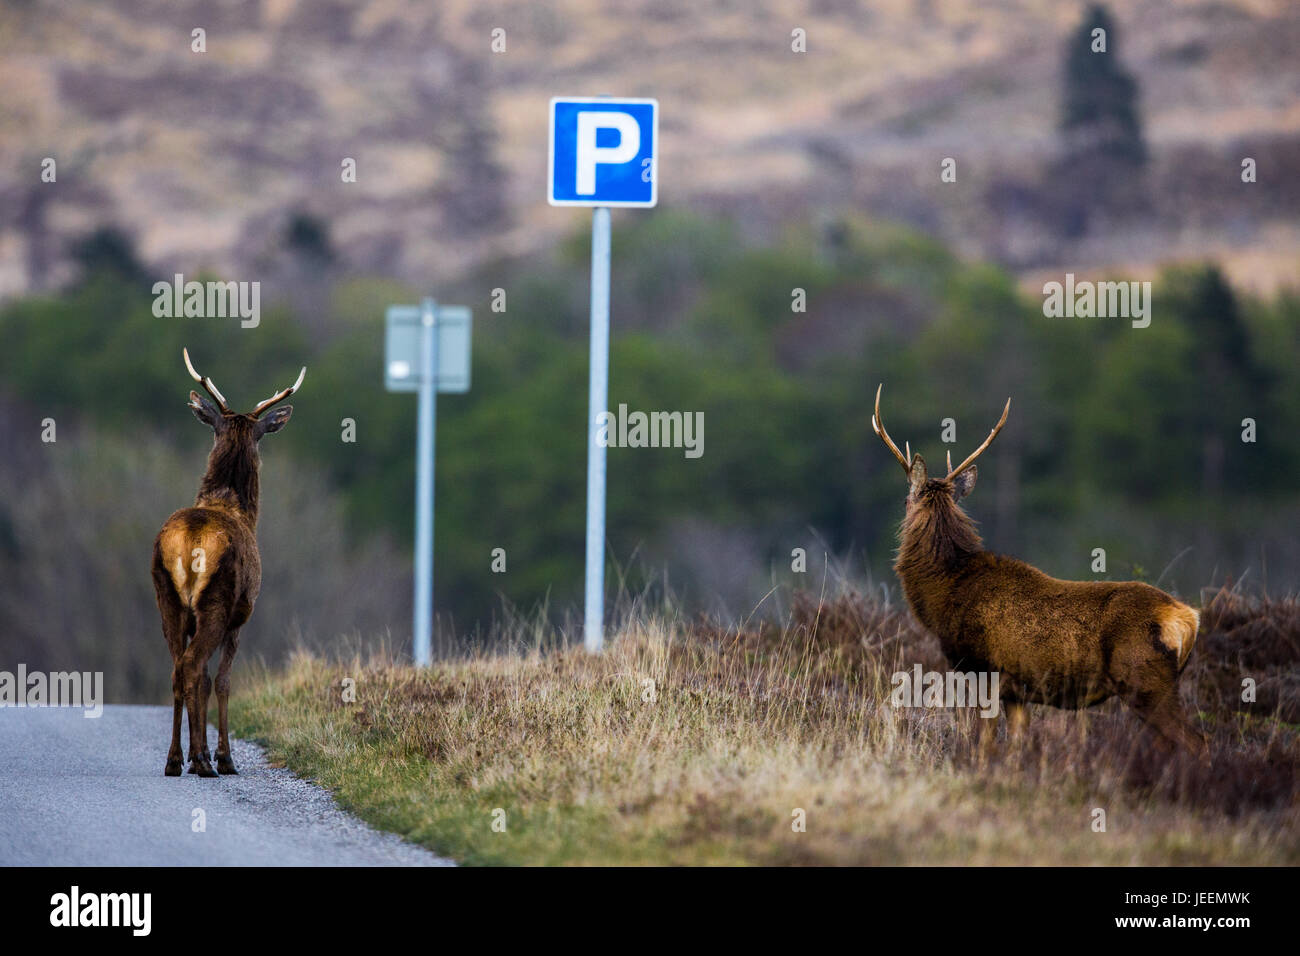 Red Deer stag on road next to a car parking sign. - Stock Image